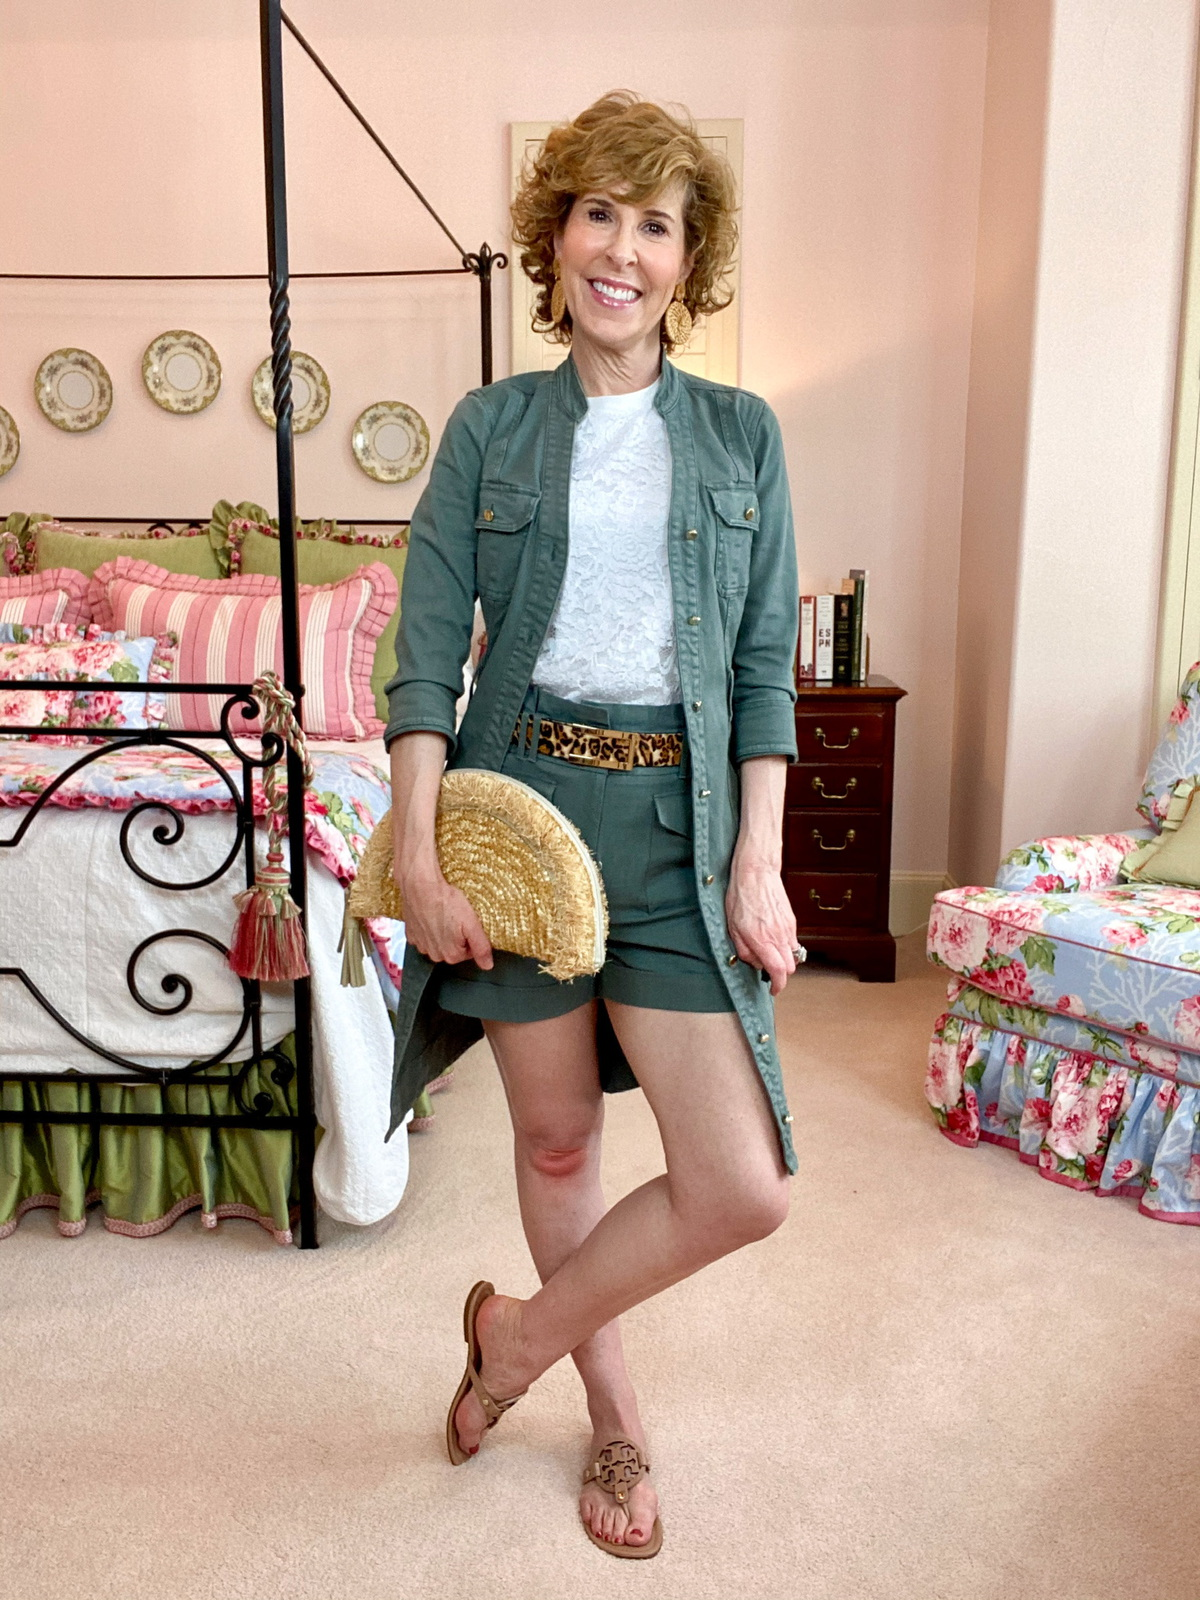 woman wearing WHBM green shirtdress open as jacket with coordinating shorts standing in bedroom